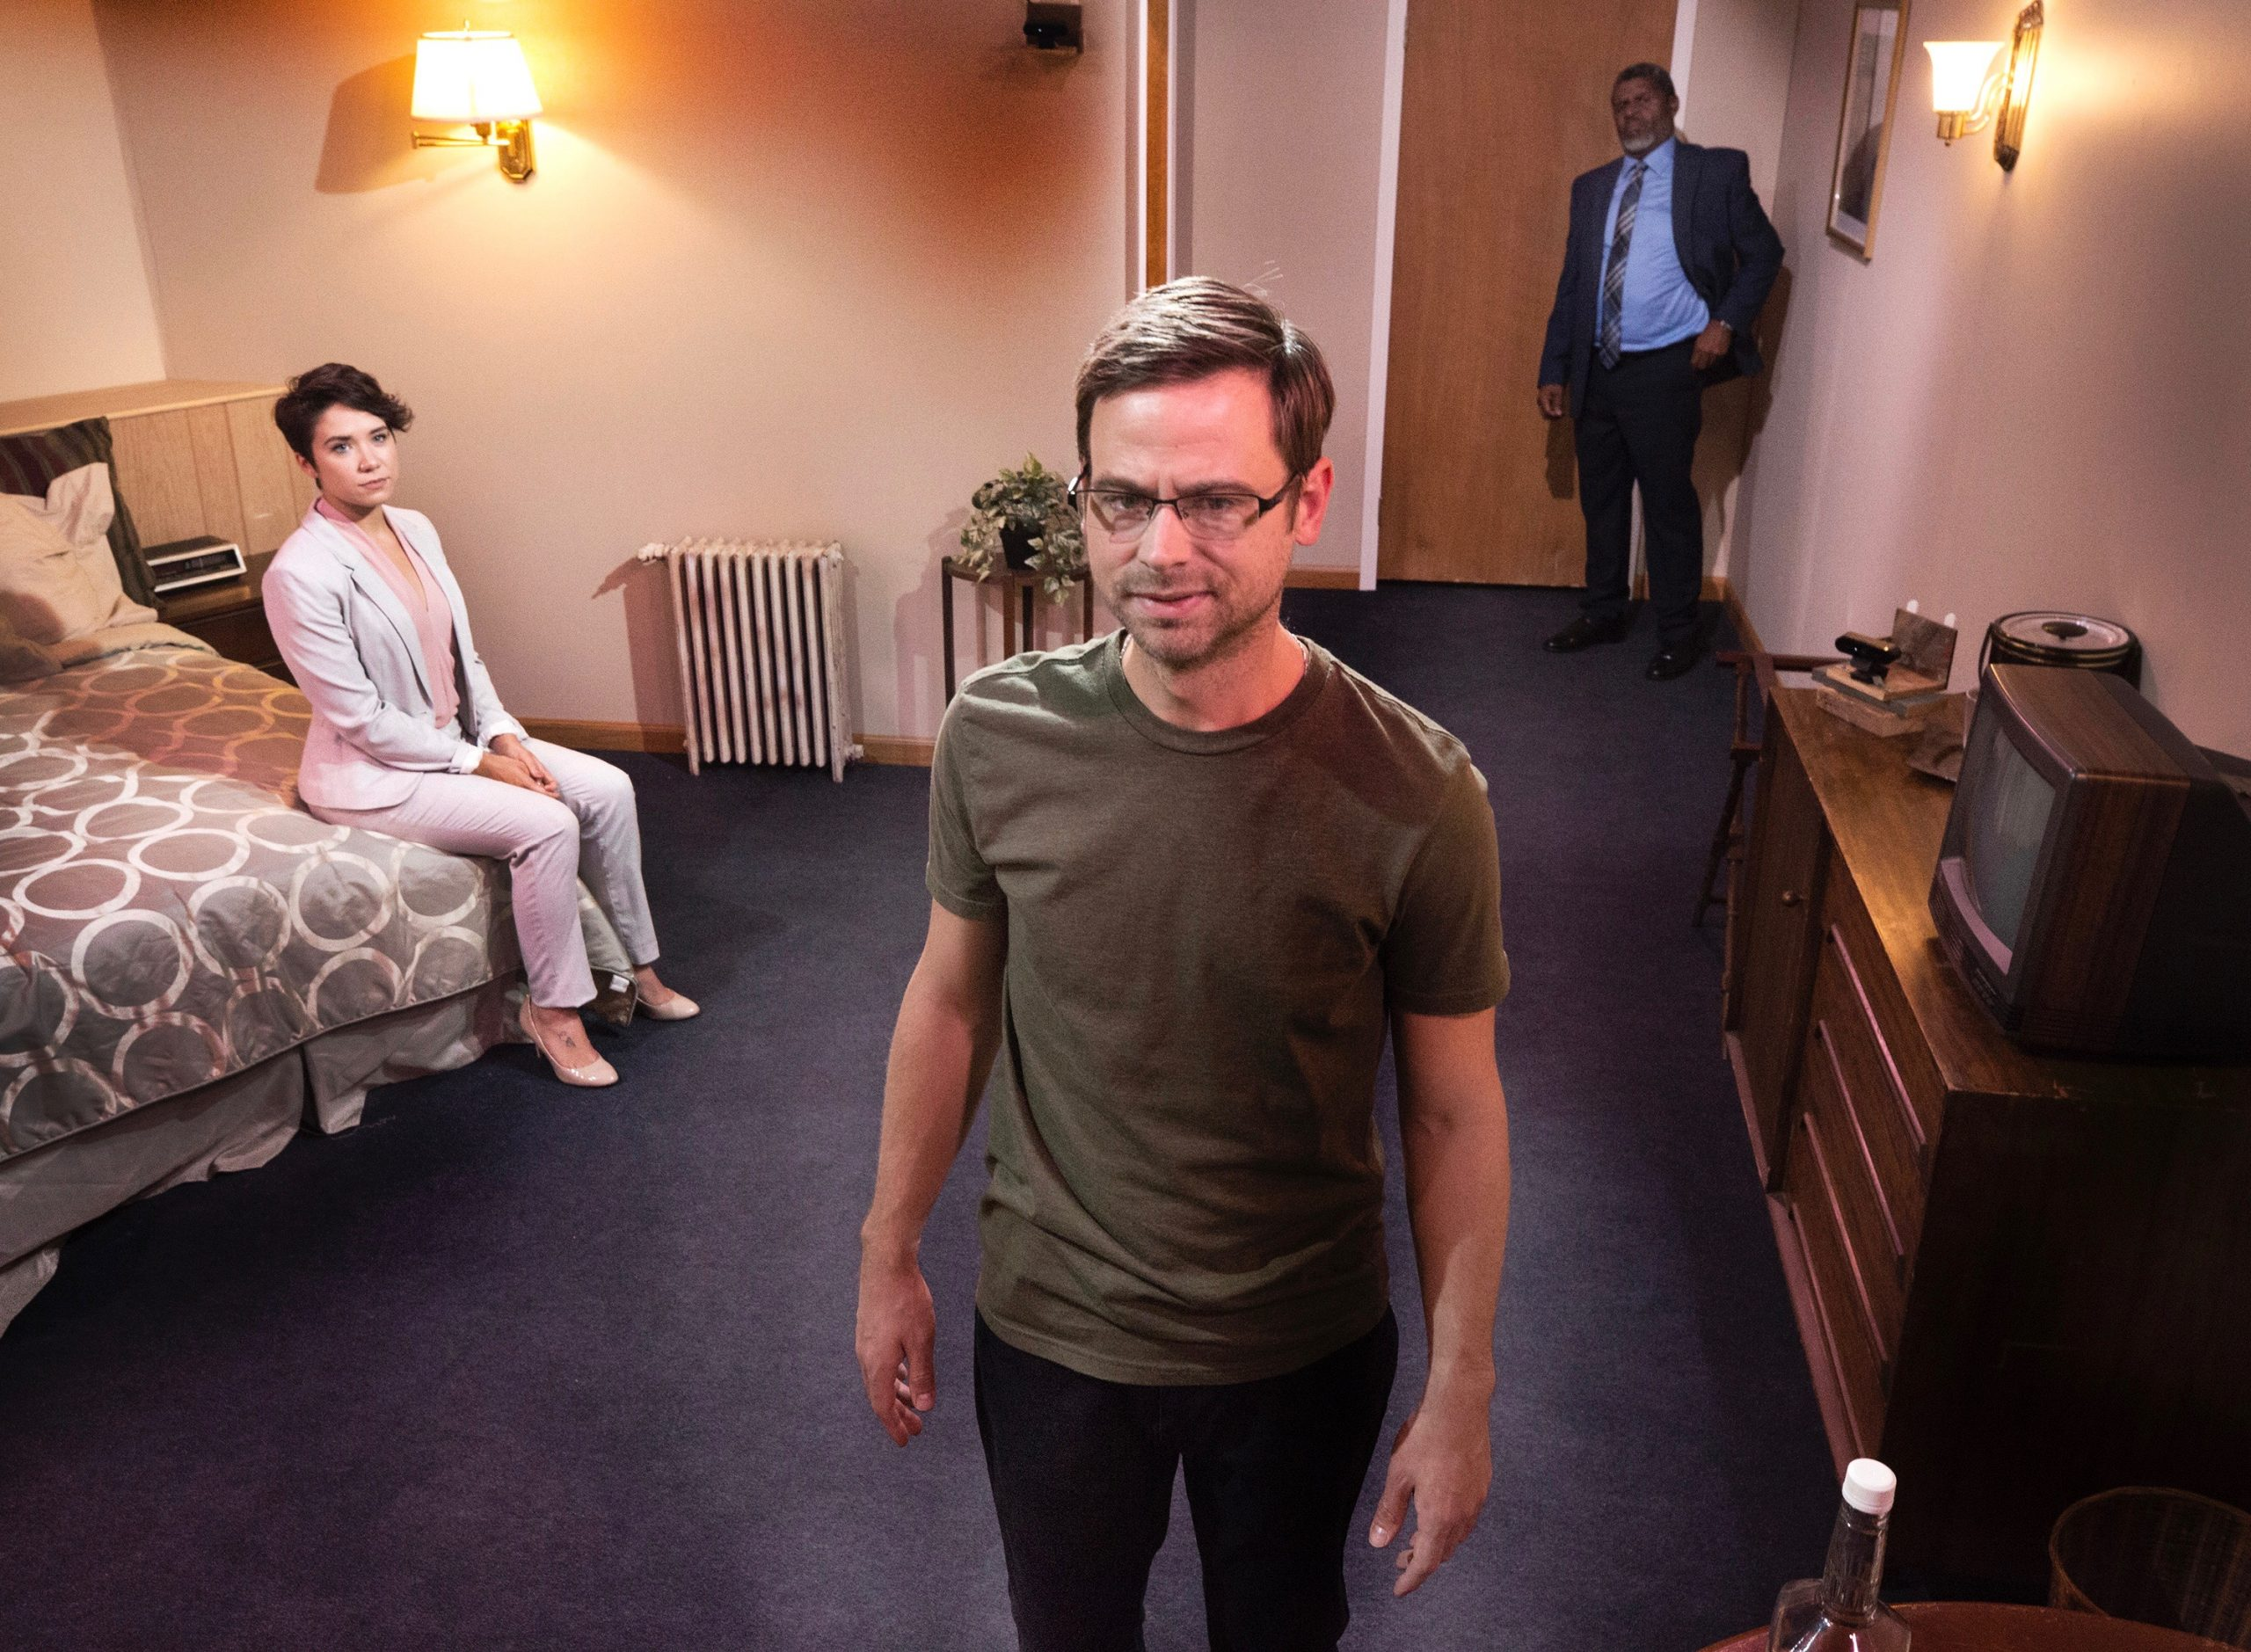 In 'Wild,' a fictional Snowden clone must confront his inner demons while wondering who's got his back. Quantum streams the play in the intimate-realism style of early TV, with actors Chris Cattell (foreground), Lydia Gibson, and Wali Jamal. (photo: Heather Mull Photography)